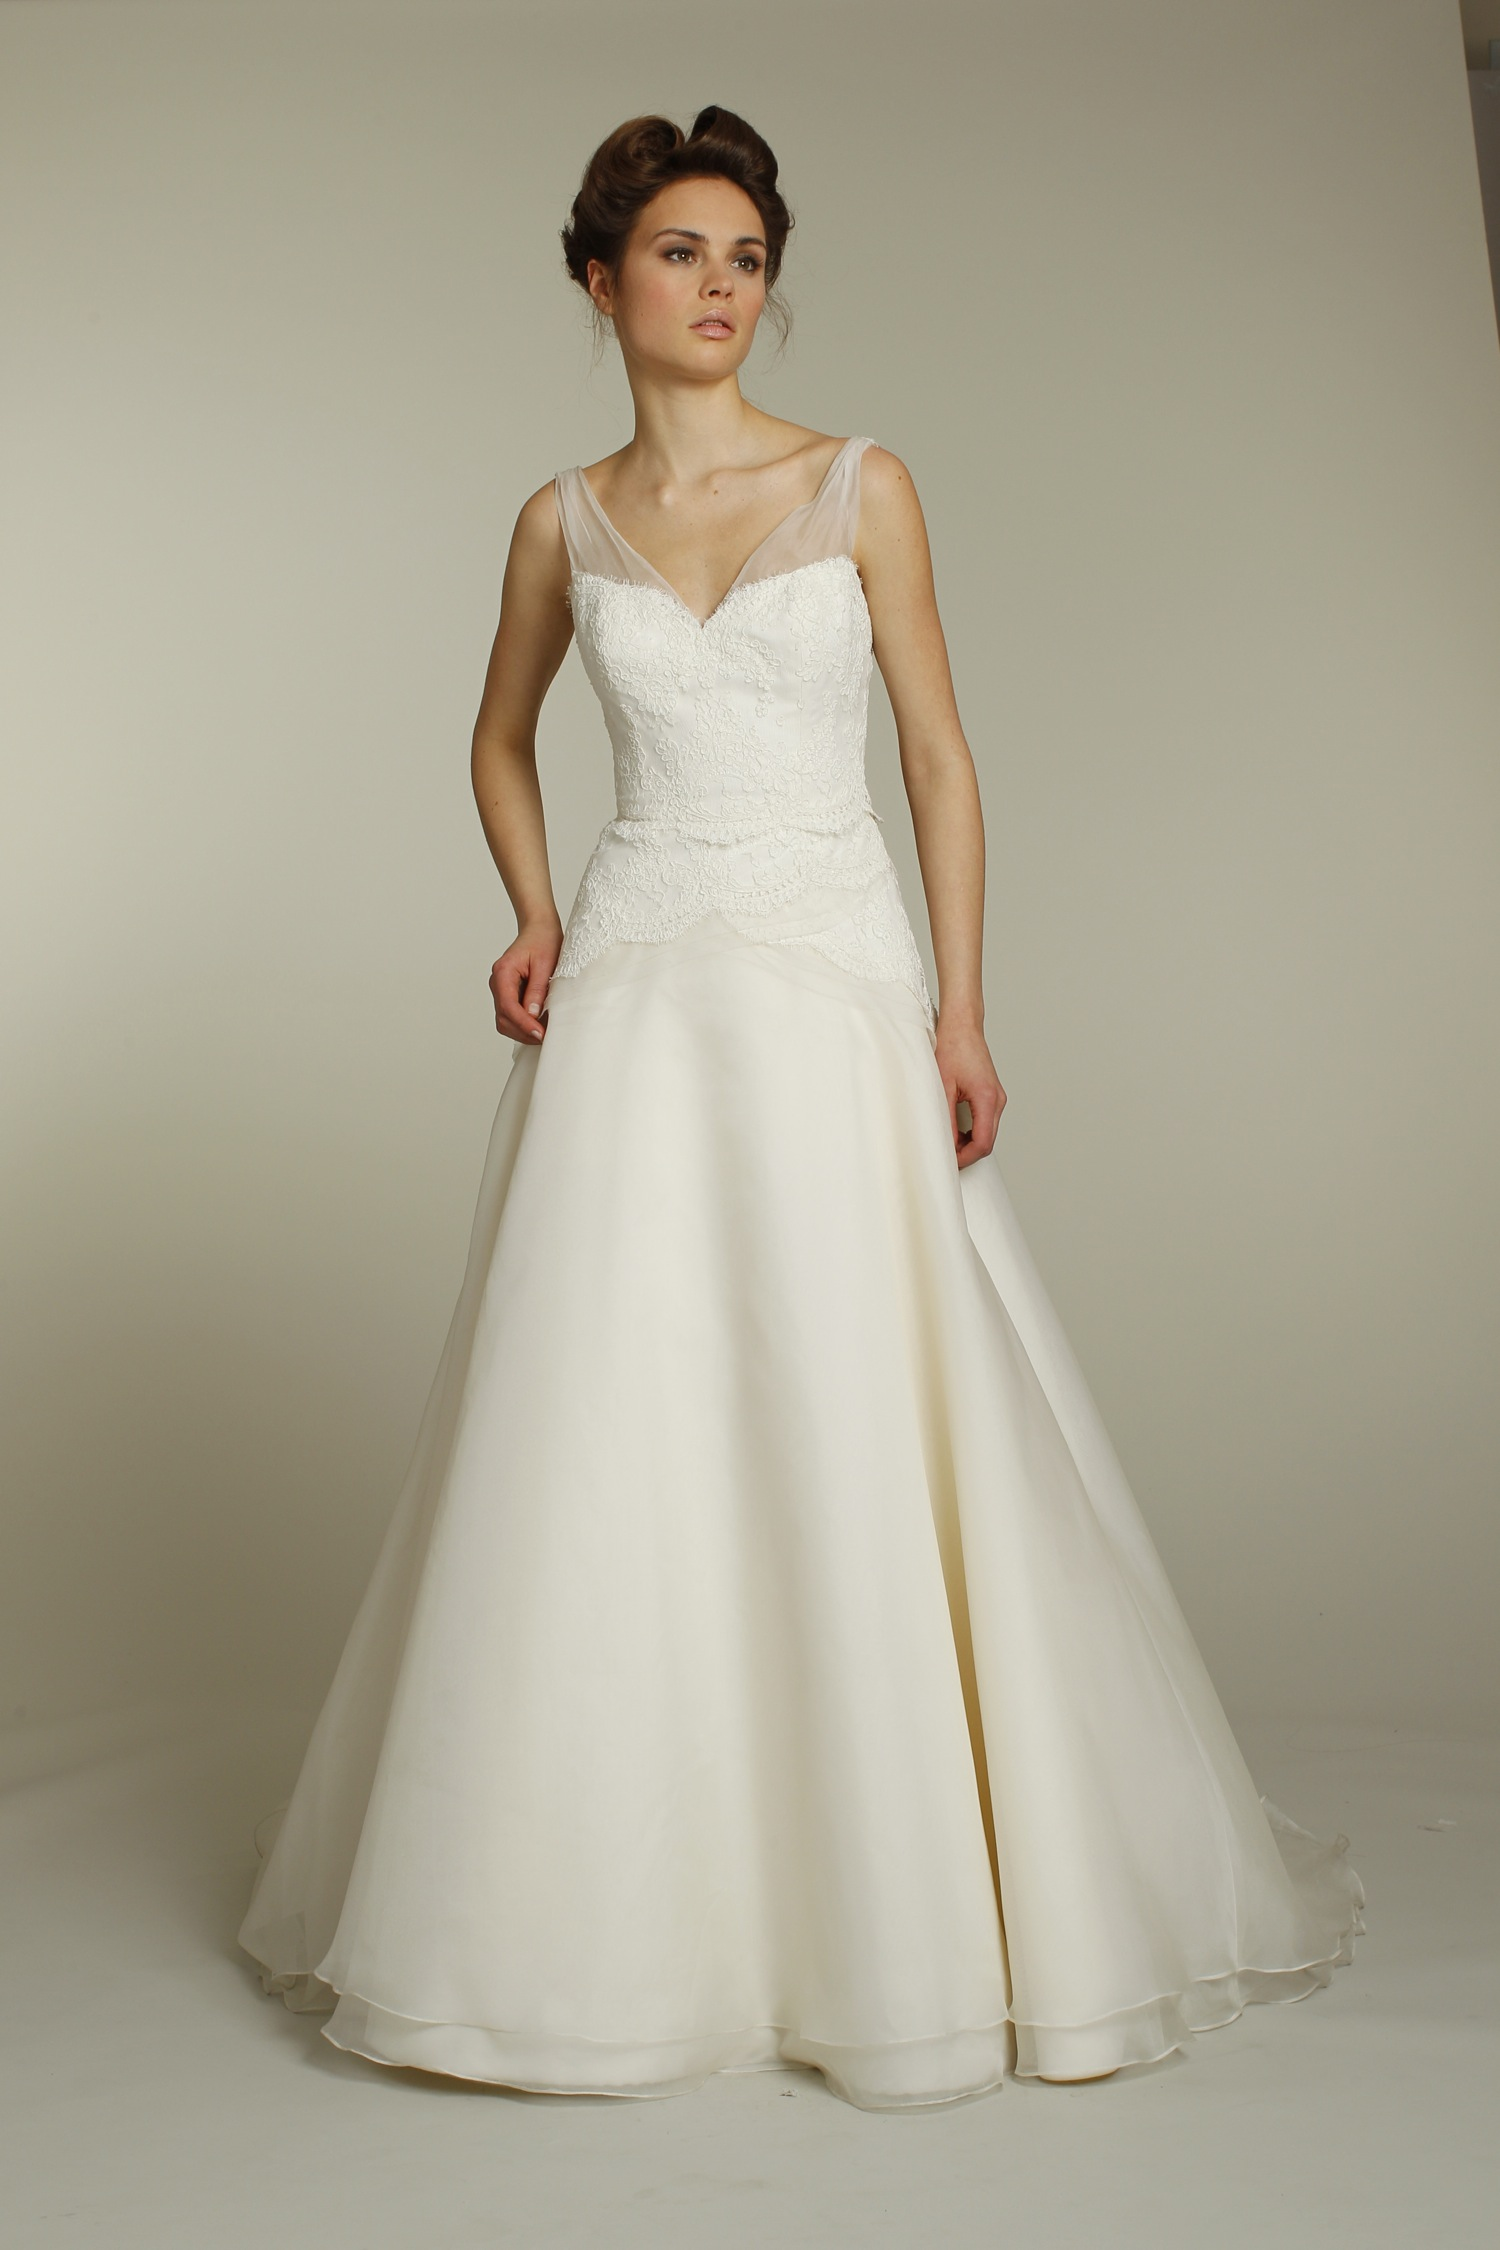 classic ivory a line wedding dress with lace applique and